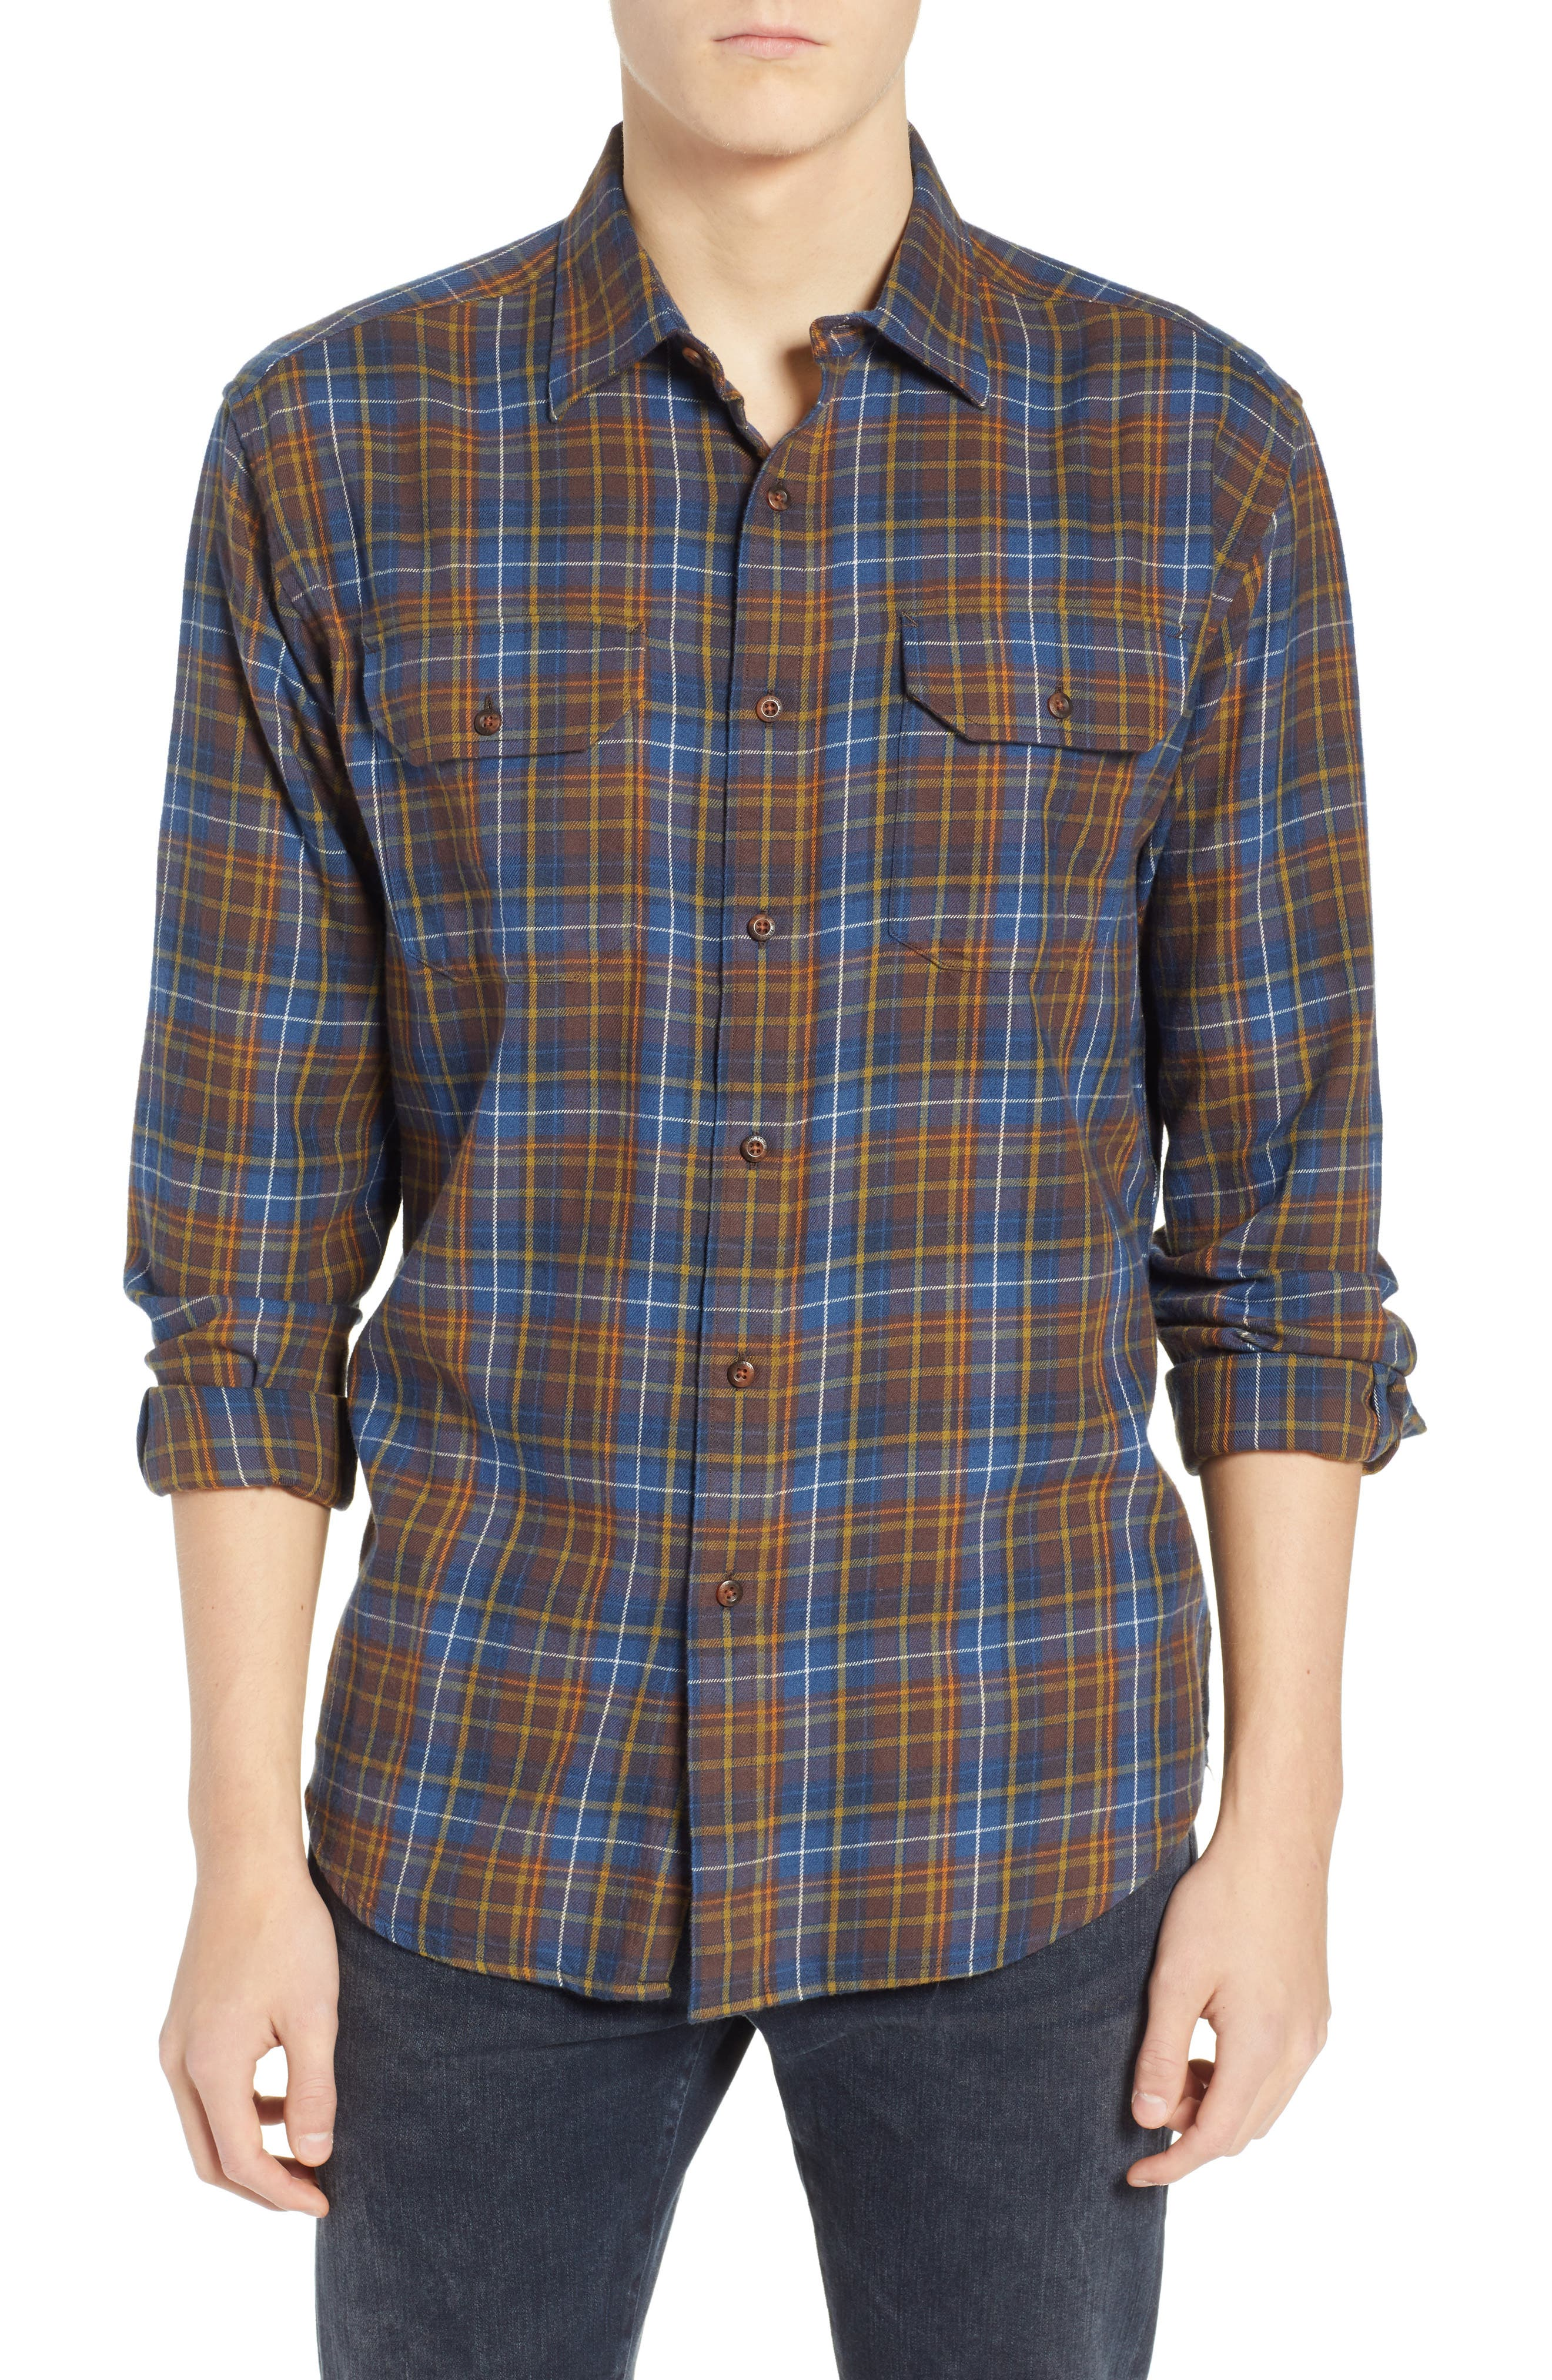 Bridger Plaid Twill Shirt,                         Main,                         color, BLUE/ BROWN/ GREEN PLAID